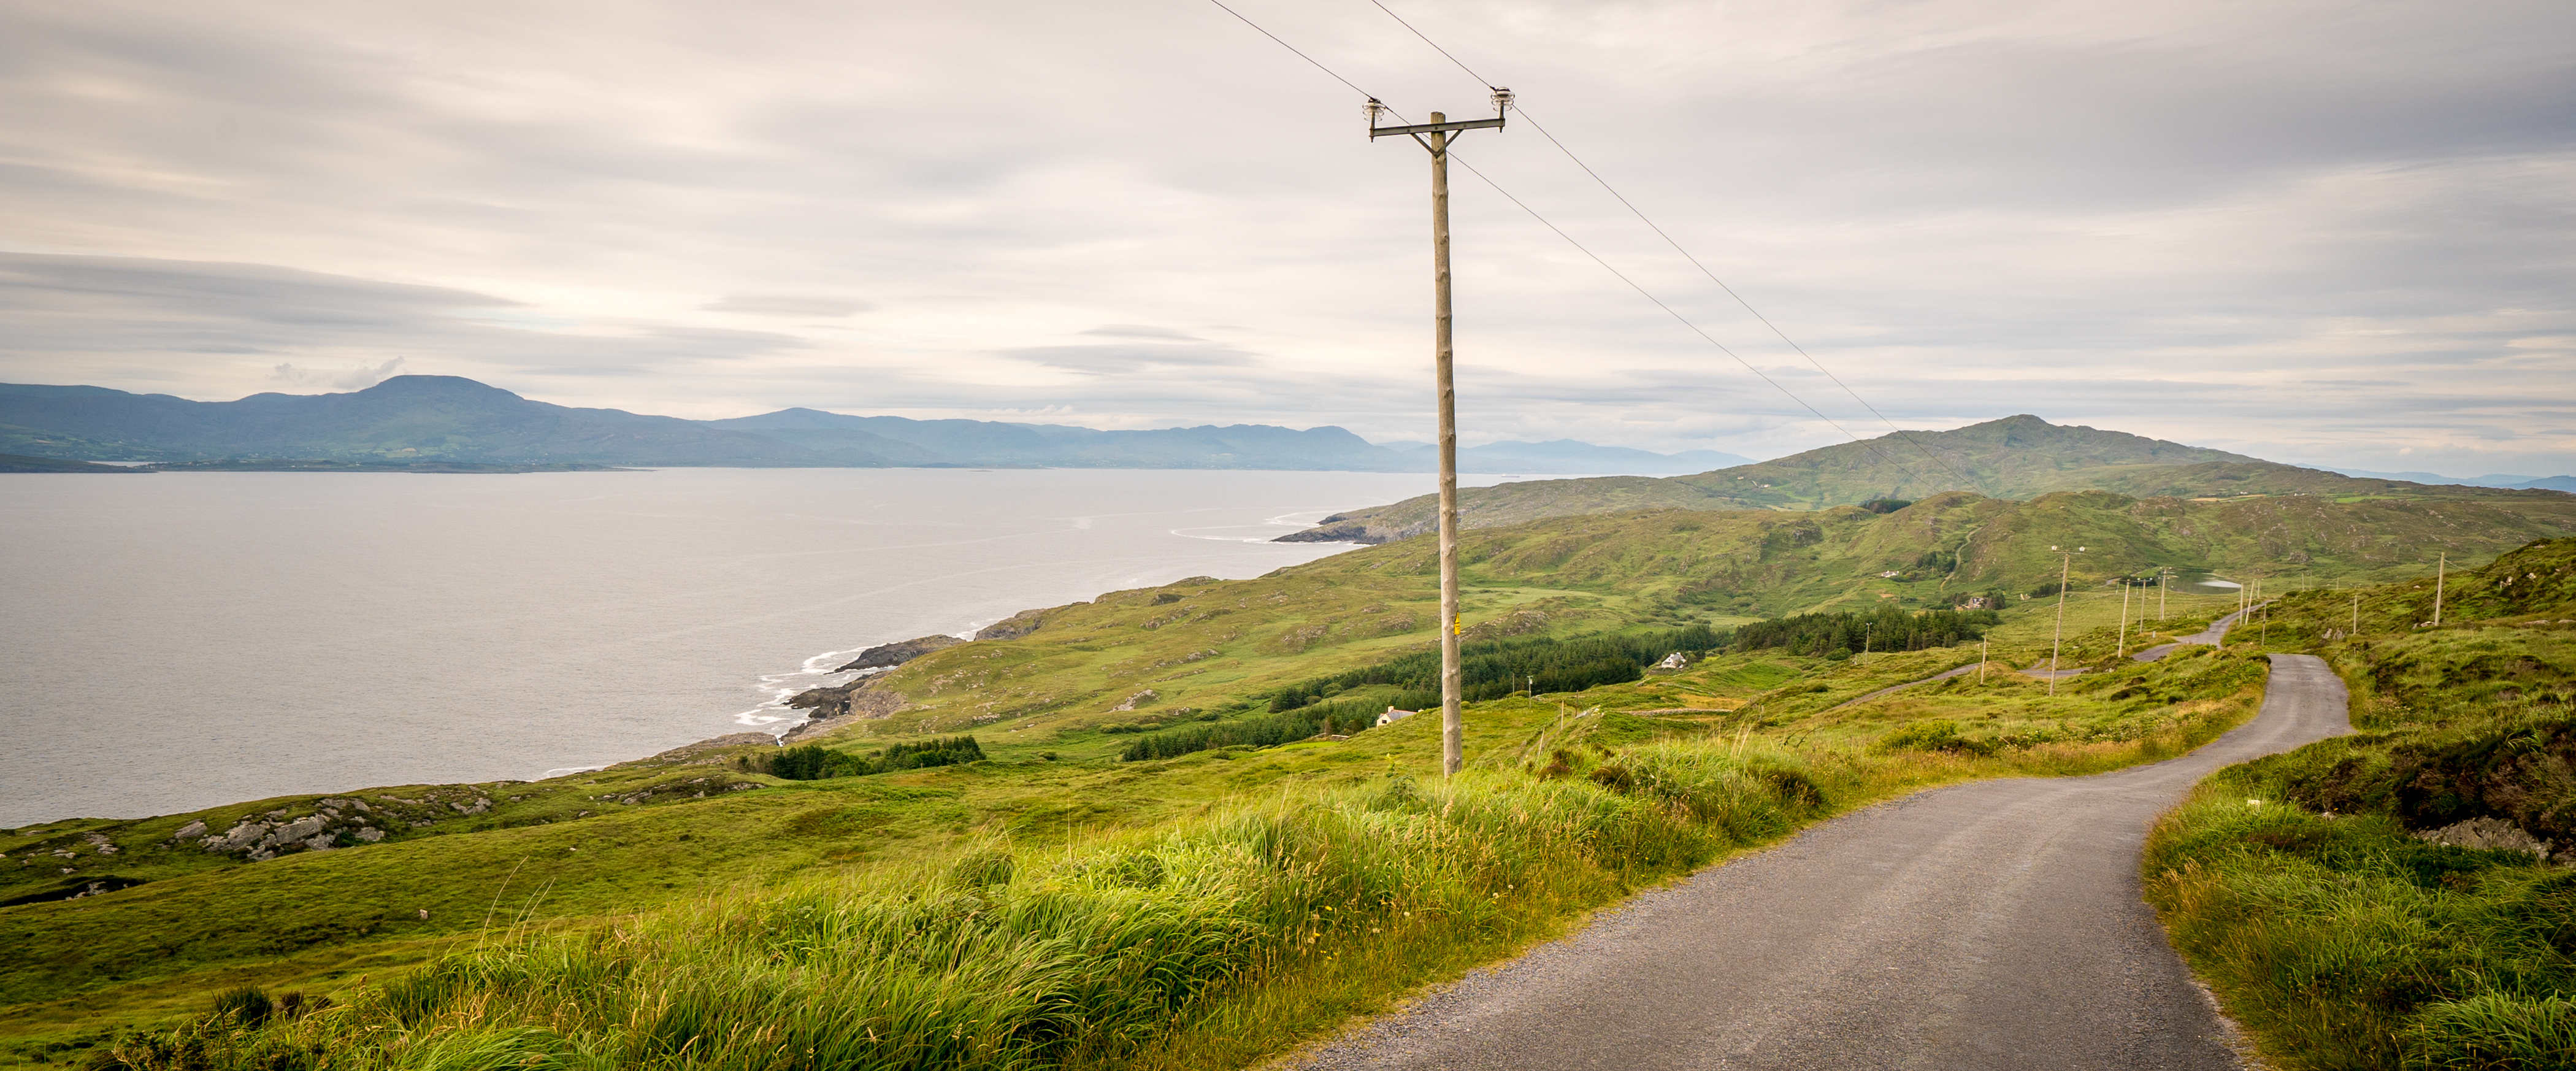 Sheeps Head Road, Ireland